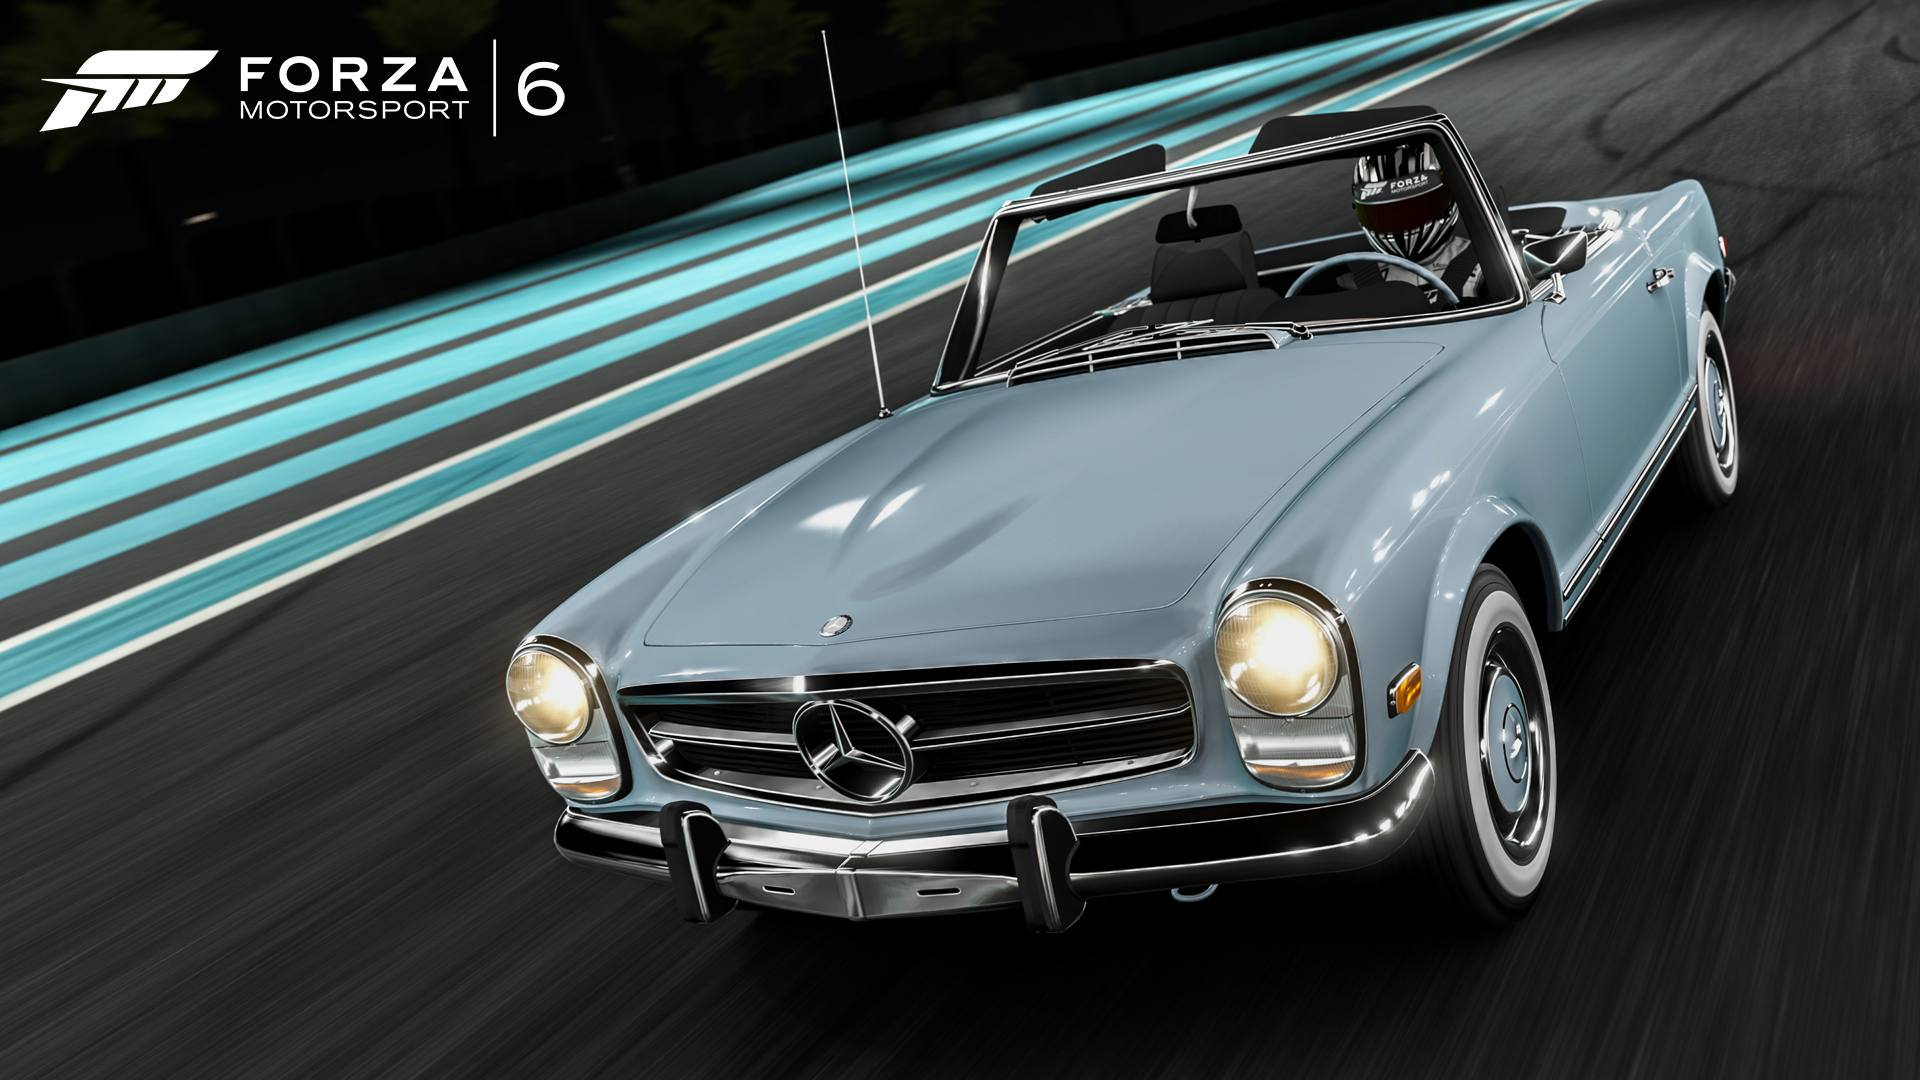 Forza Motorsport 6 14-03-16 1967 Mercedes-Benz 280 SL 001